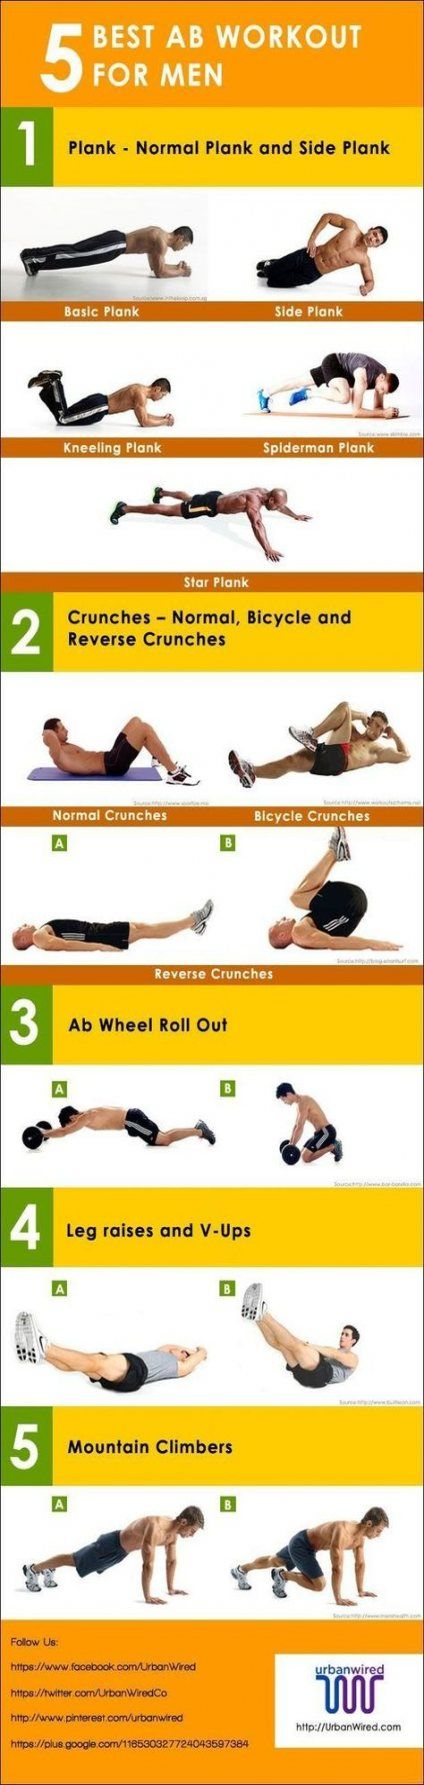 61 Ideas Fitness Abs Six Packs Ab Workouts #fitness